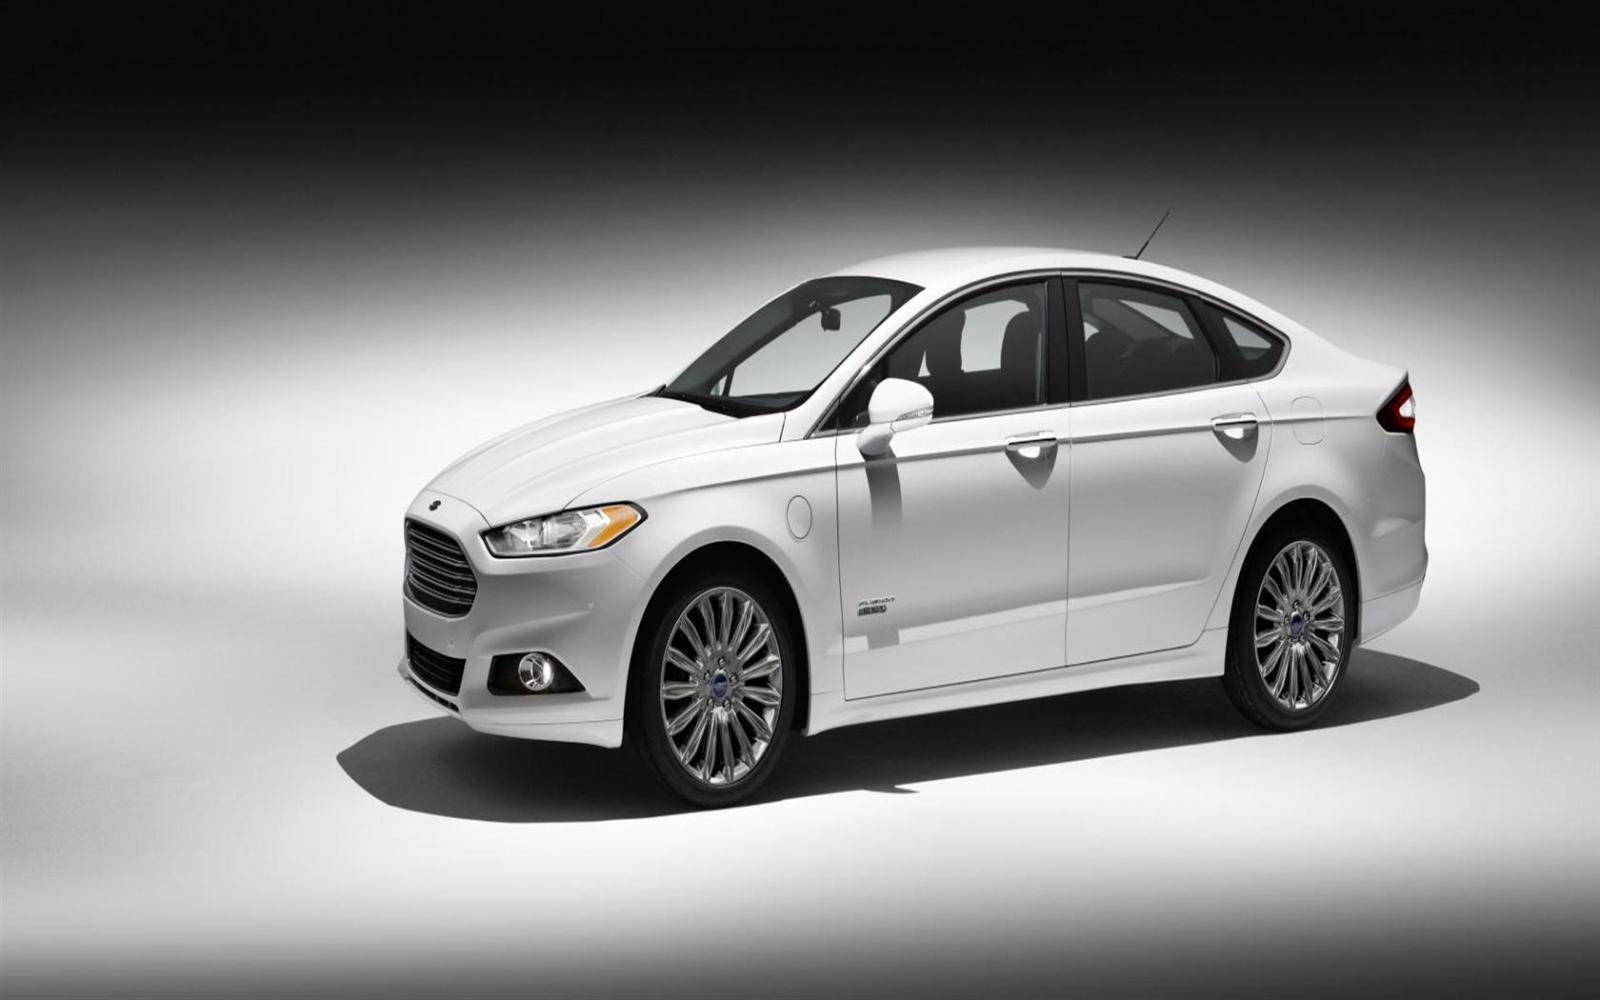 2013 ford fusion energi information and photos zombiedrive. Black Bedroom Furniture Sets. Home Design Ideas